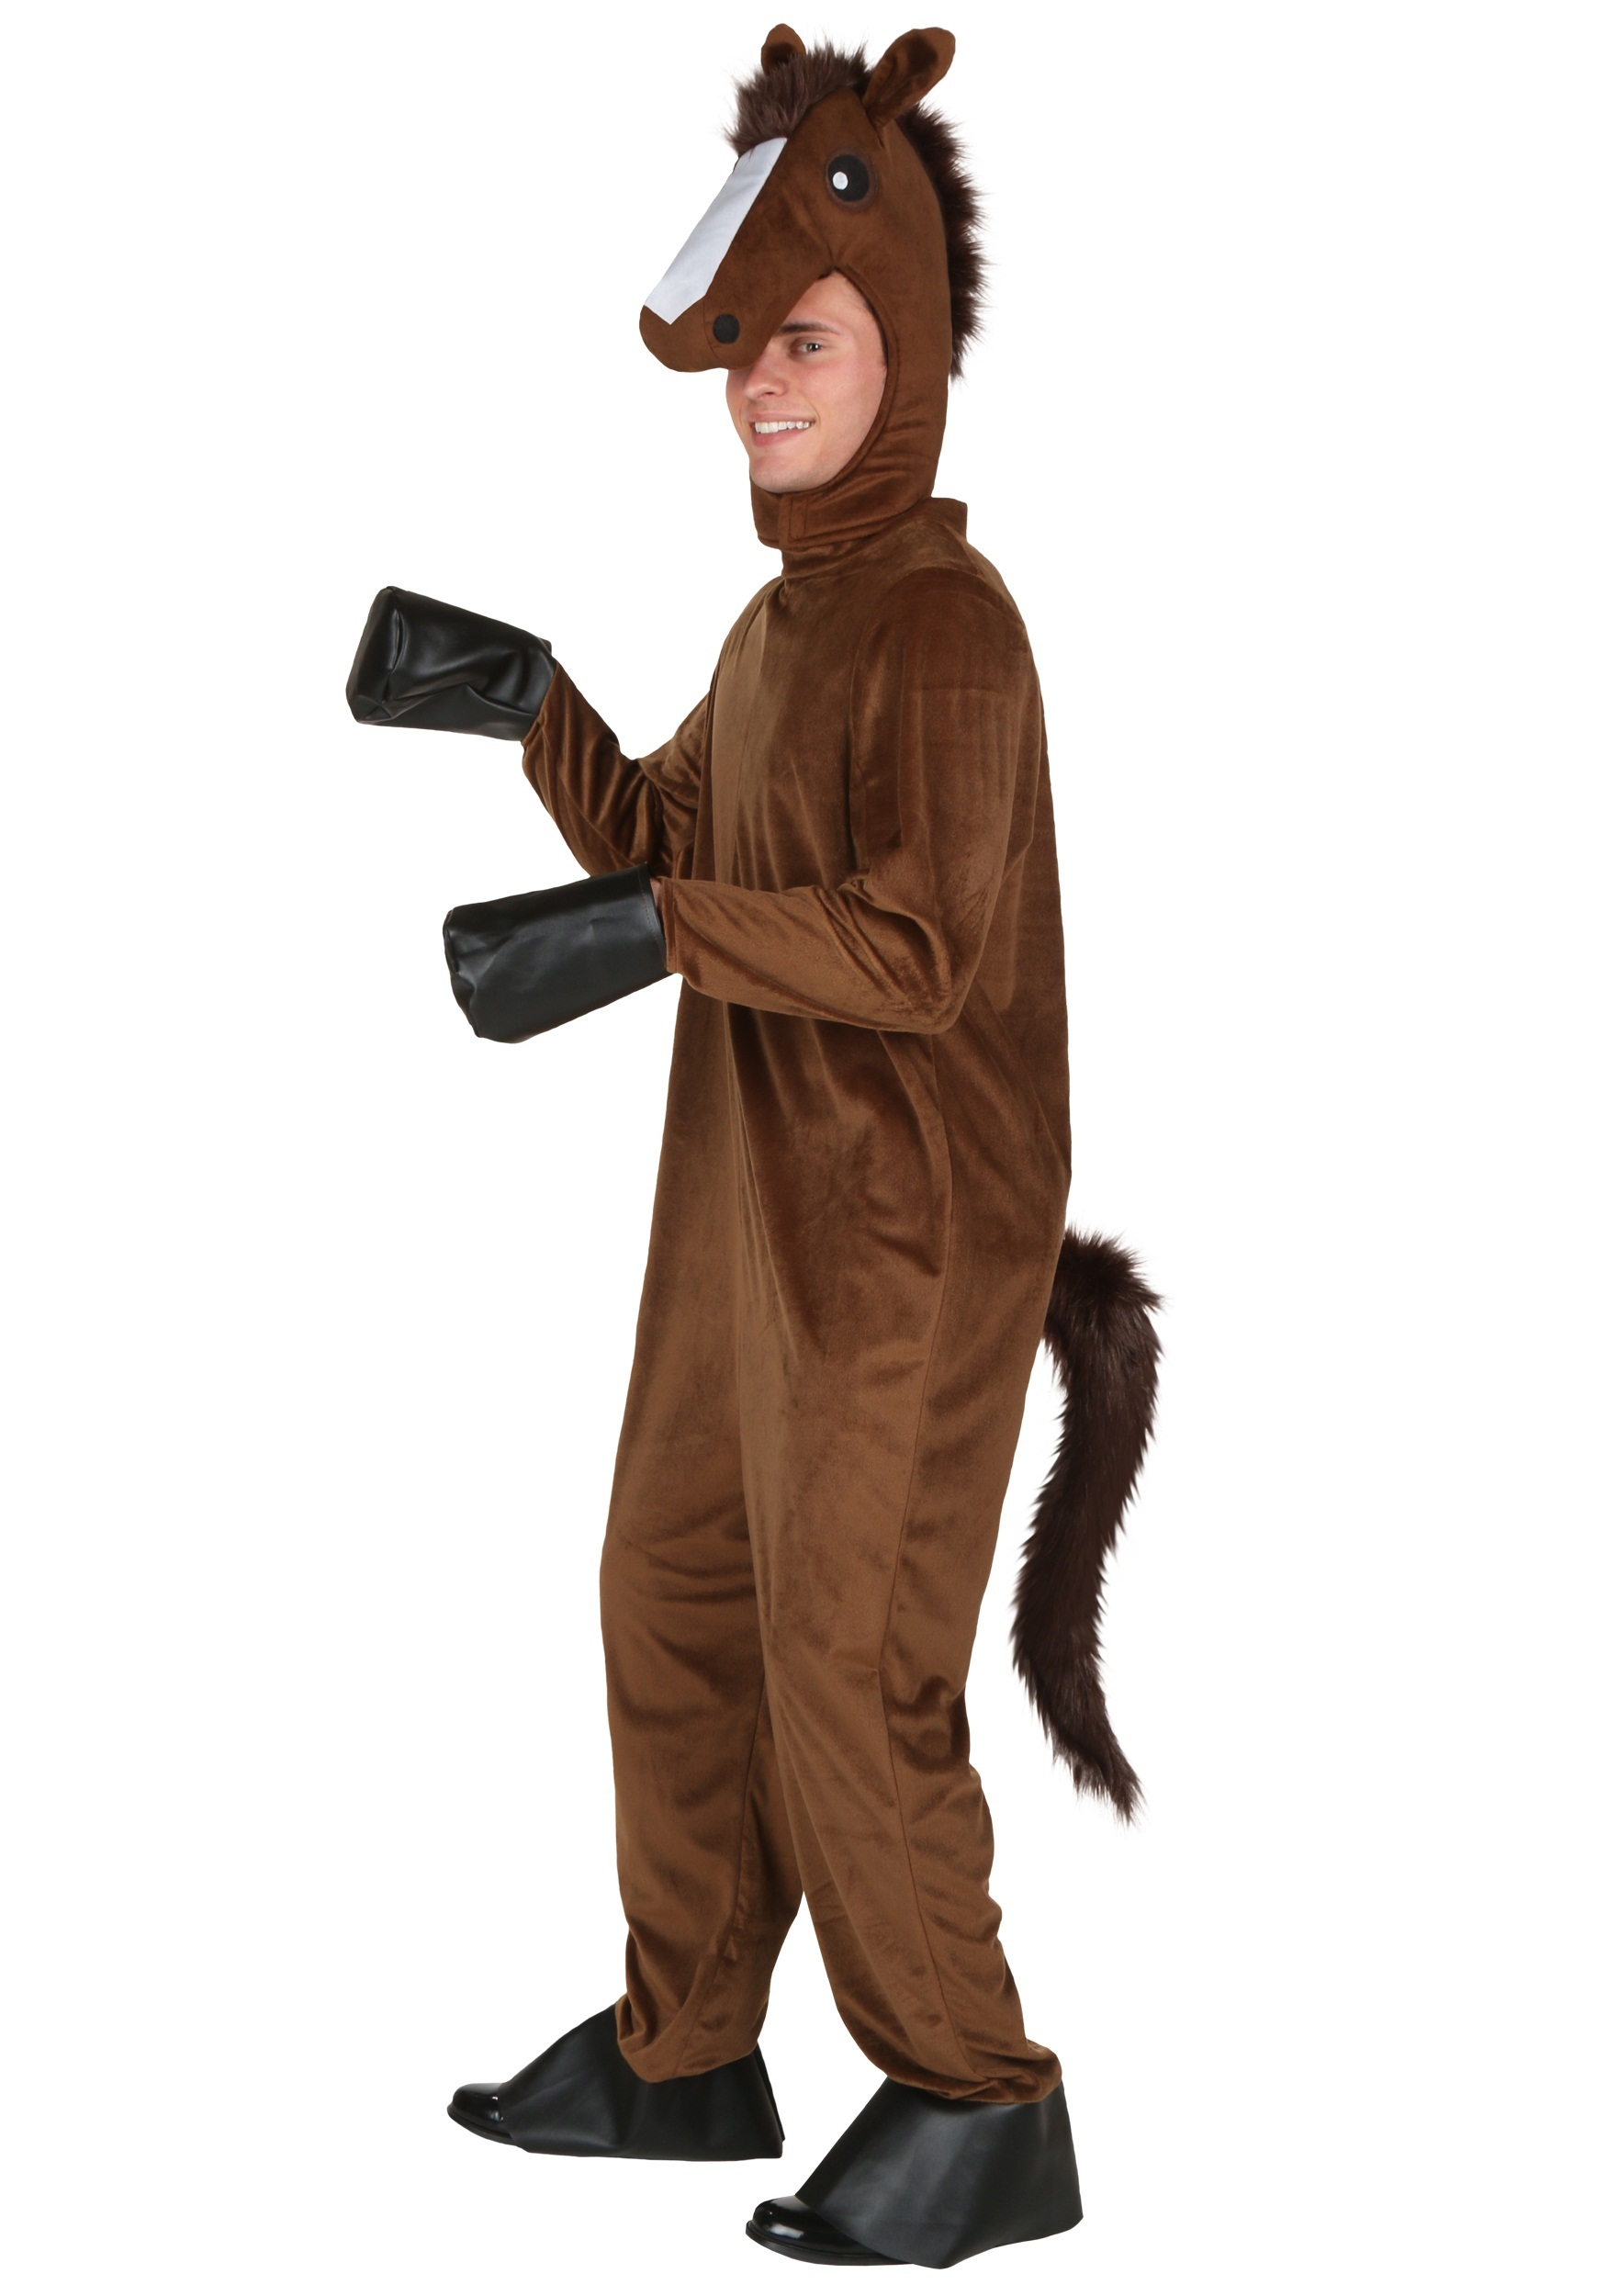 pics photos   two person horse costume adult horse costumes 1 of 1